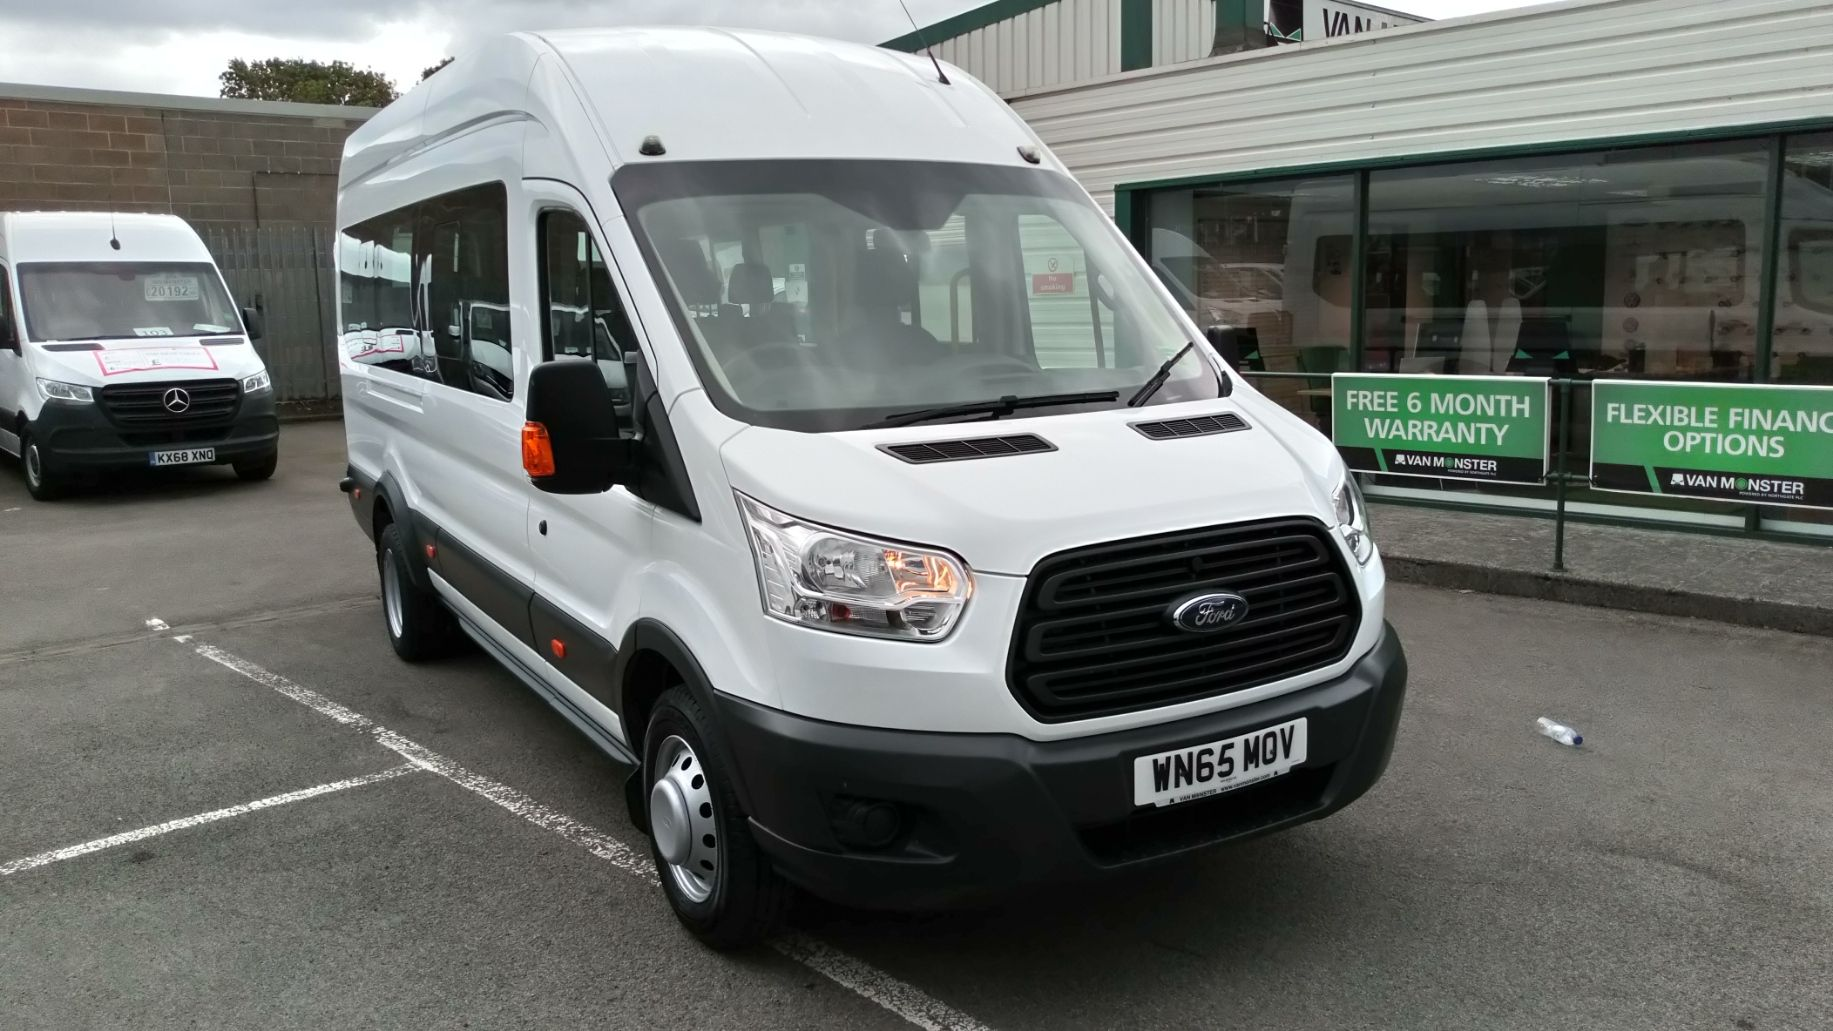 2015 Ford Transit 2.2 Tdci 125Ps H3 17 Seater (WN65MOV)